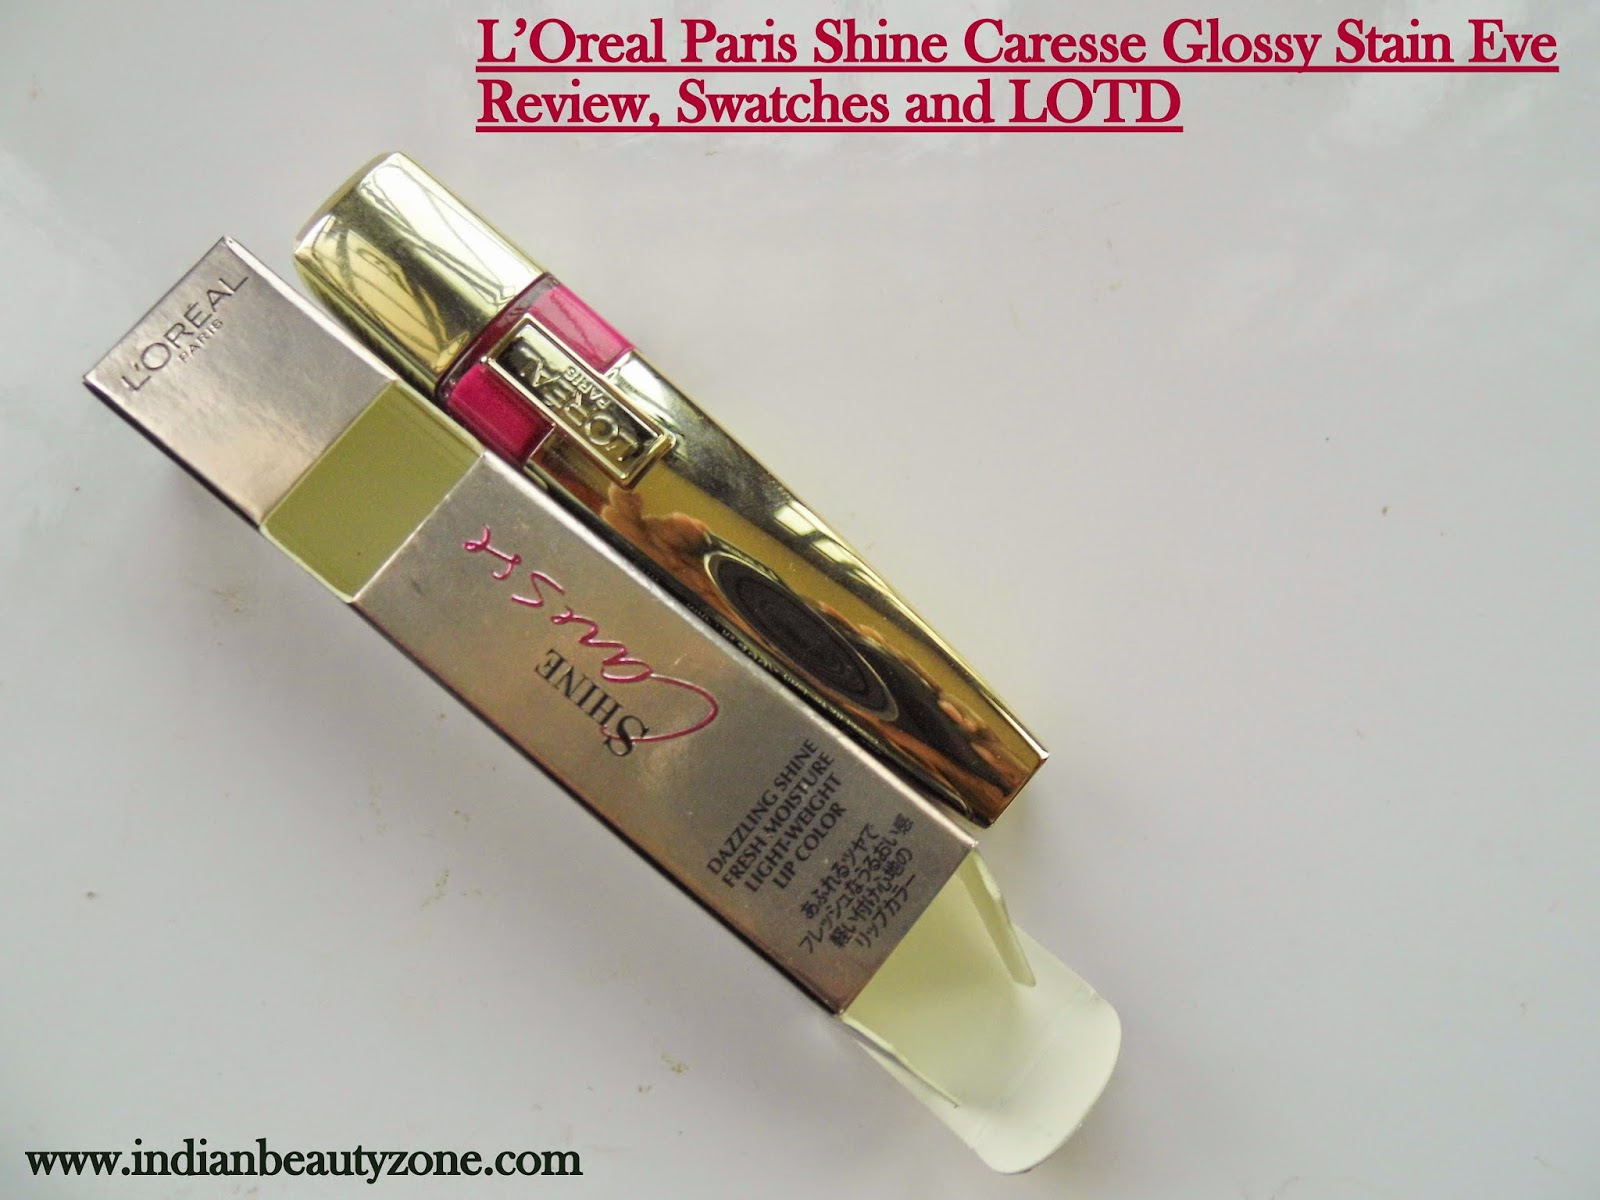 L'Oreal Paris Shine Caresse Glossy Stain Eve Swatches and LOTD